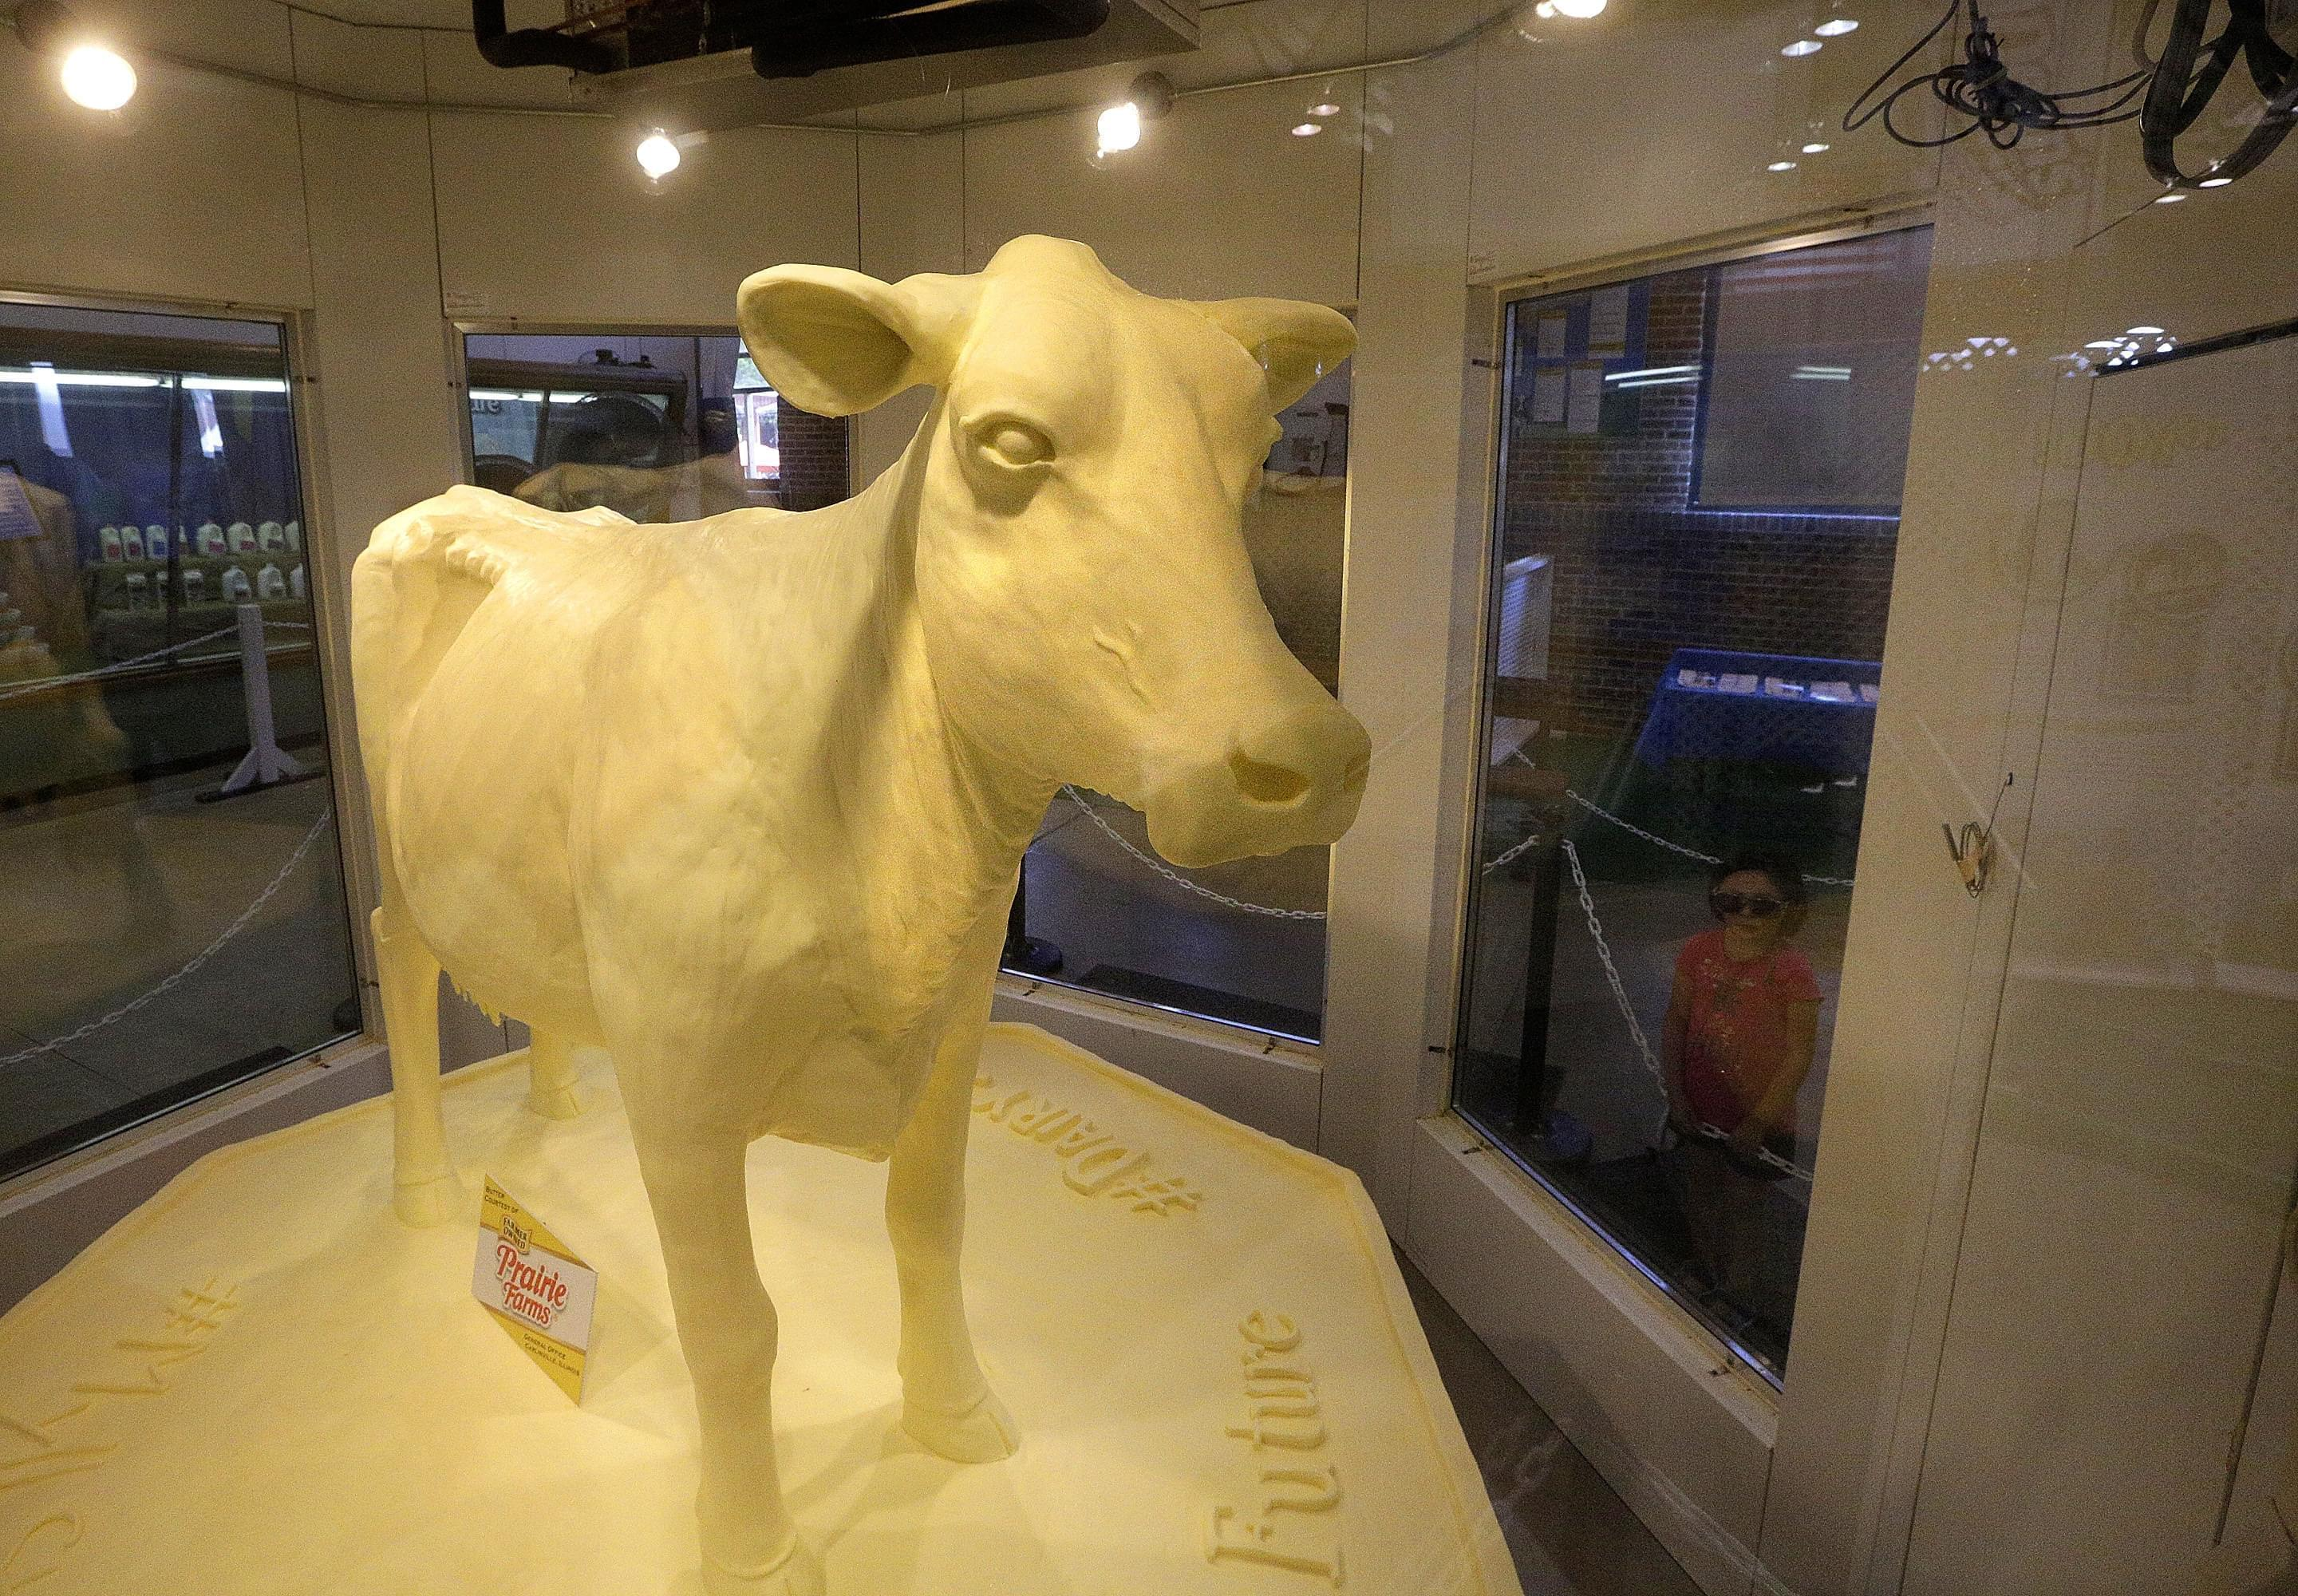 Visitors view the Illinois State Fair Butter Cow designed by Sarah Pratt after the Twilight Parade at the Illinois State Fair Thursday, Aug. 11, 2016, in Springfield, Ill.